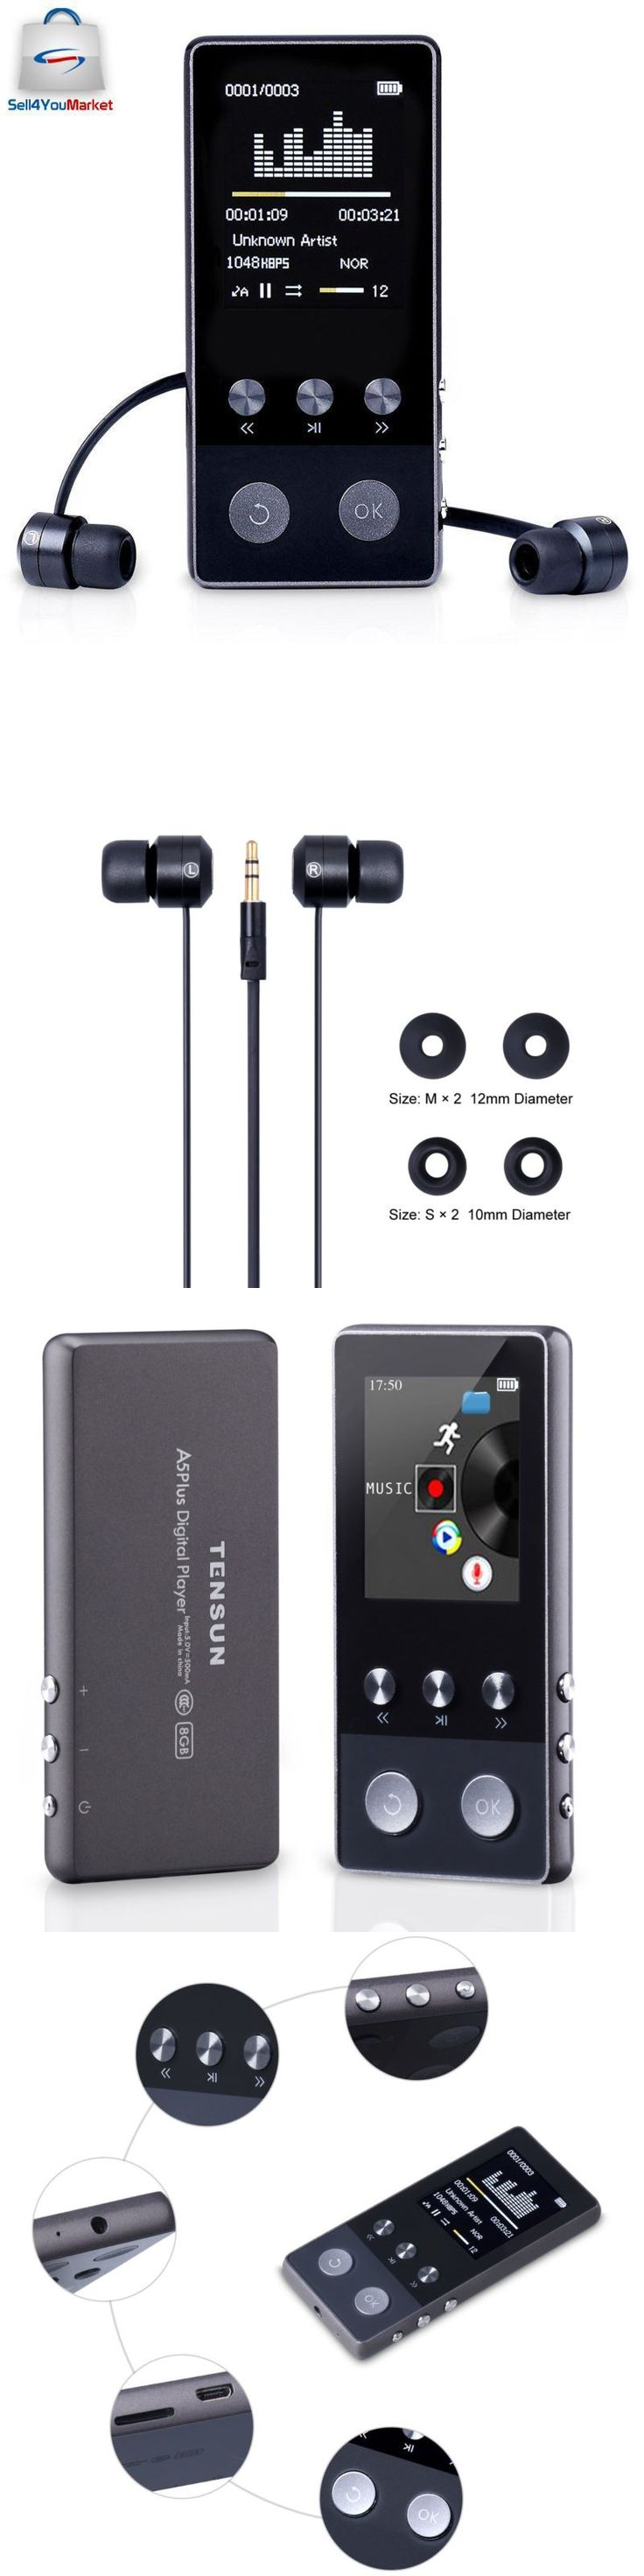 iPods and MP3 Players: Bluetooth 8Gb Mp3 Player Lossless Sound Screen Metal Mp4 Sport Black Up To 64 Gb -> BUY IT NOW ONLY: $37.11 on eBay!